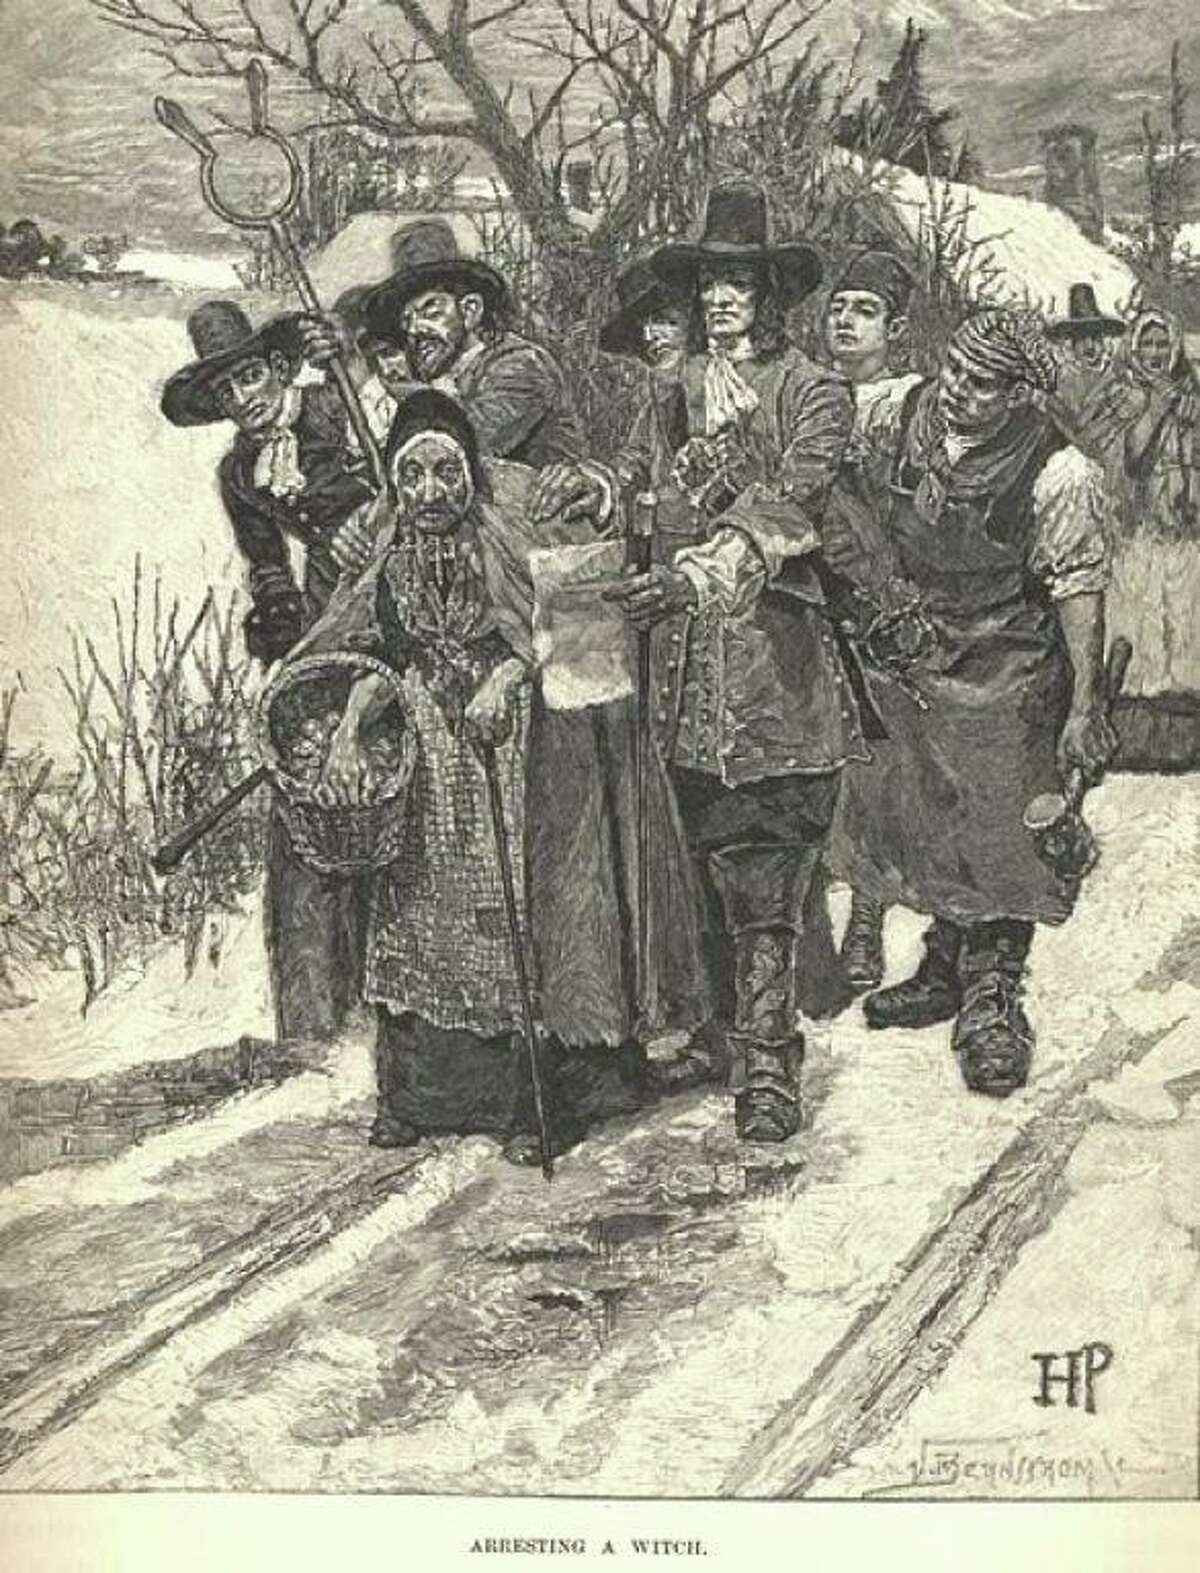 An illustration - Arrest of a Witch